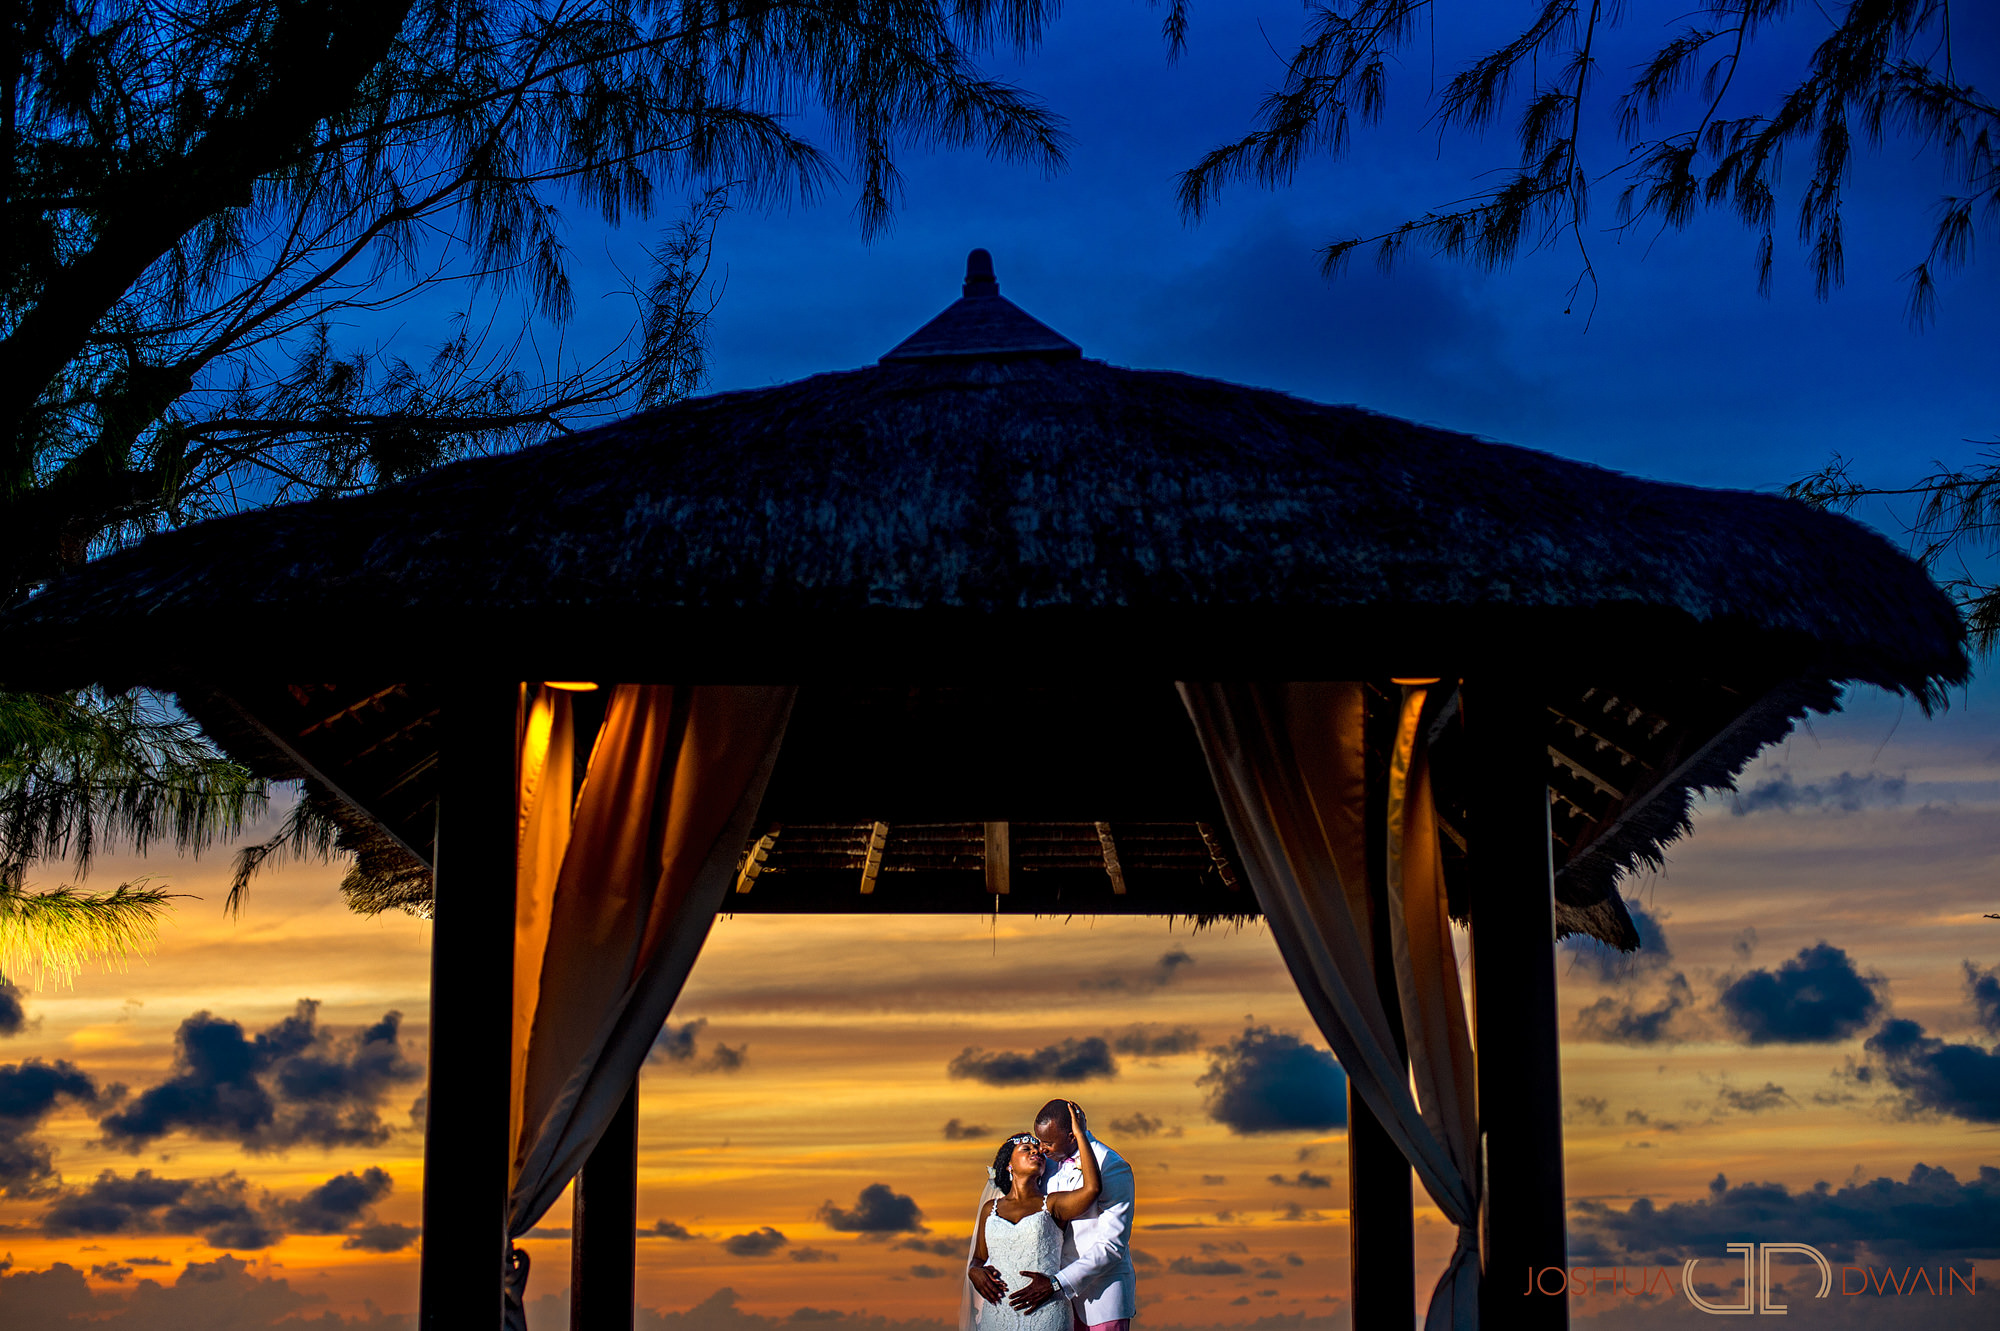 penelope-joseph-001-beaches-resort-turks-and-caicos-providenciales-wedding-photographer-joshua-dwain